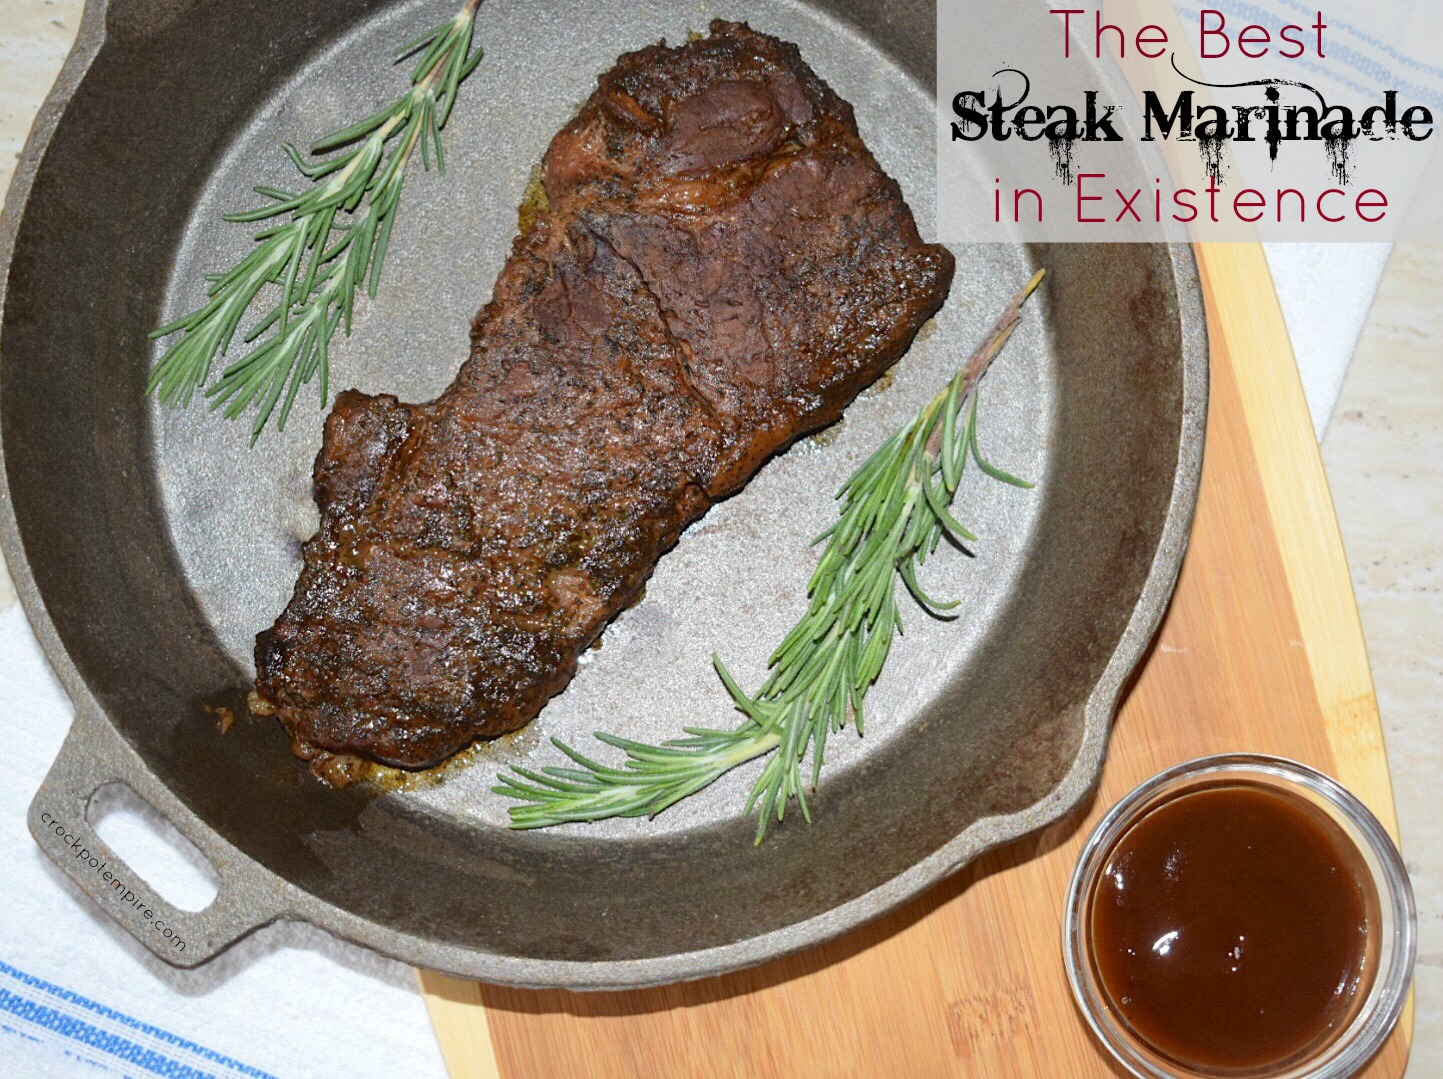 Have you tried 'The Best Steak Marinade in Existence ...